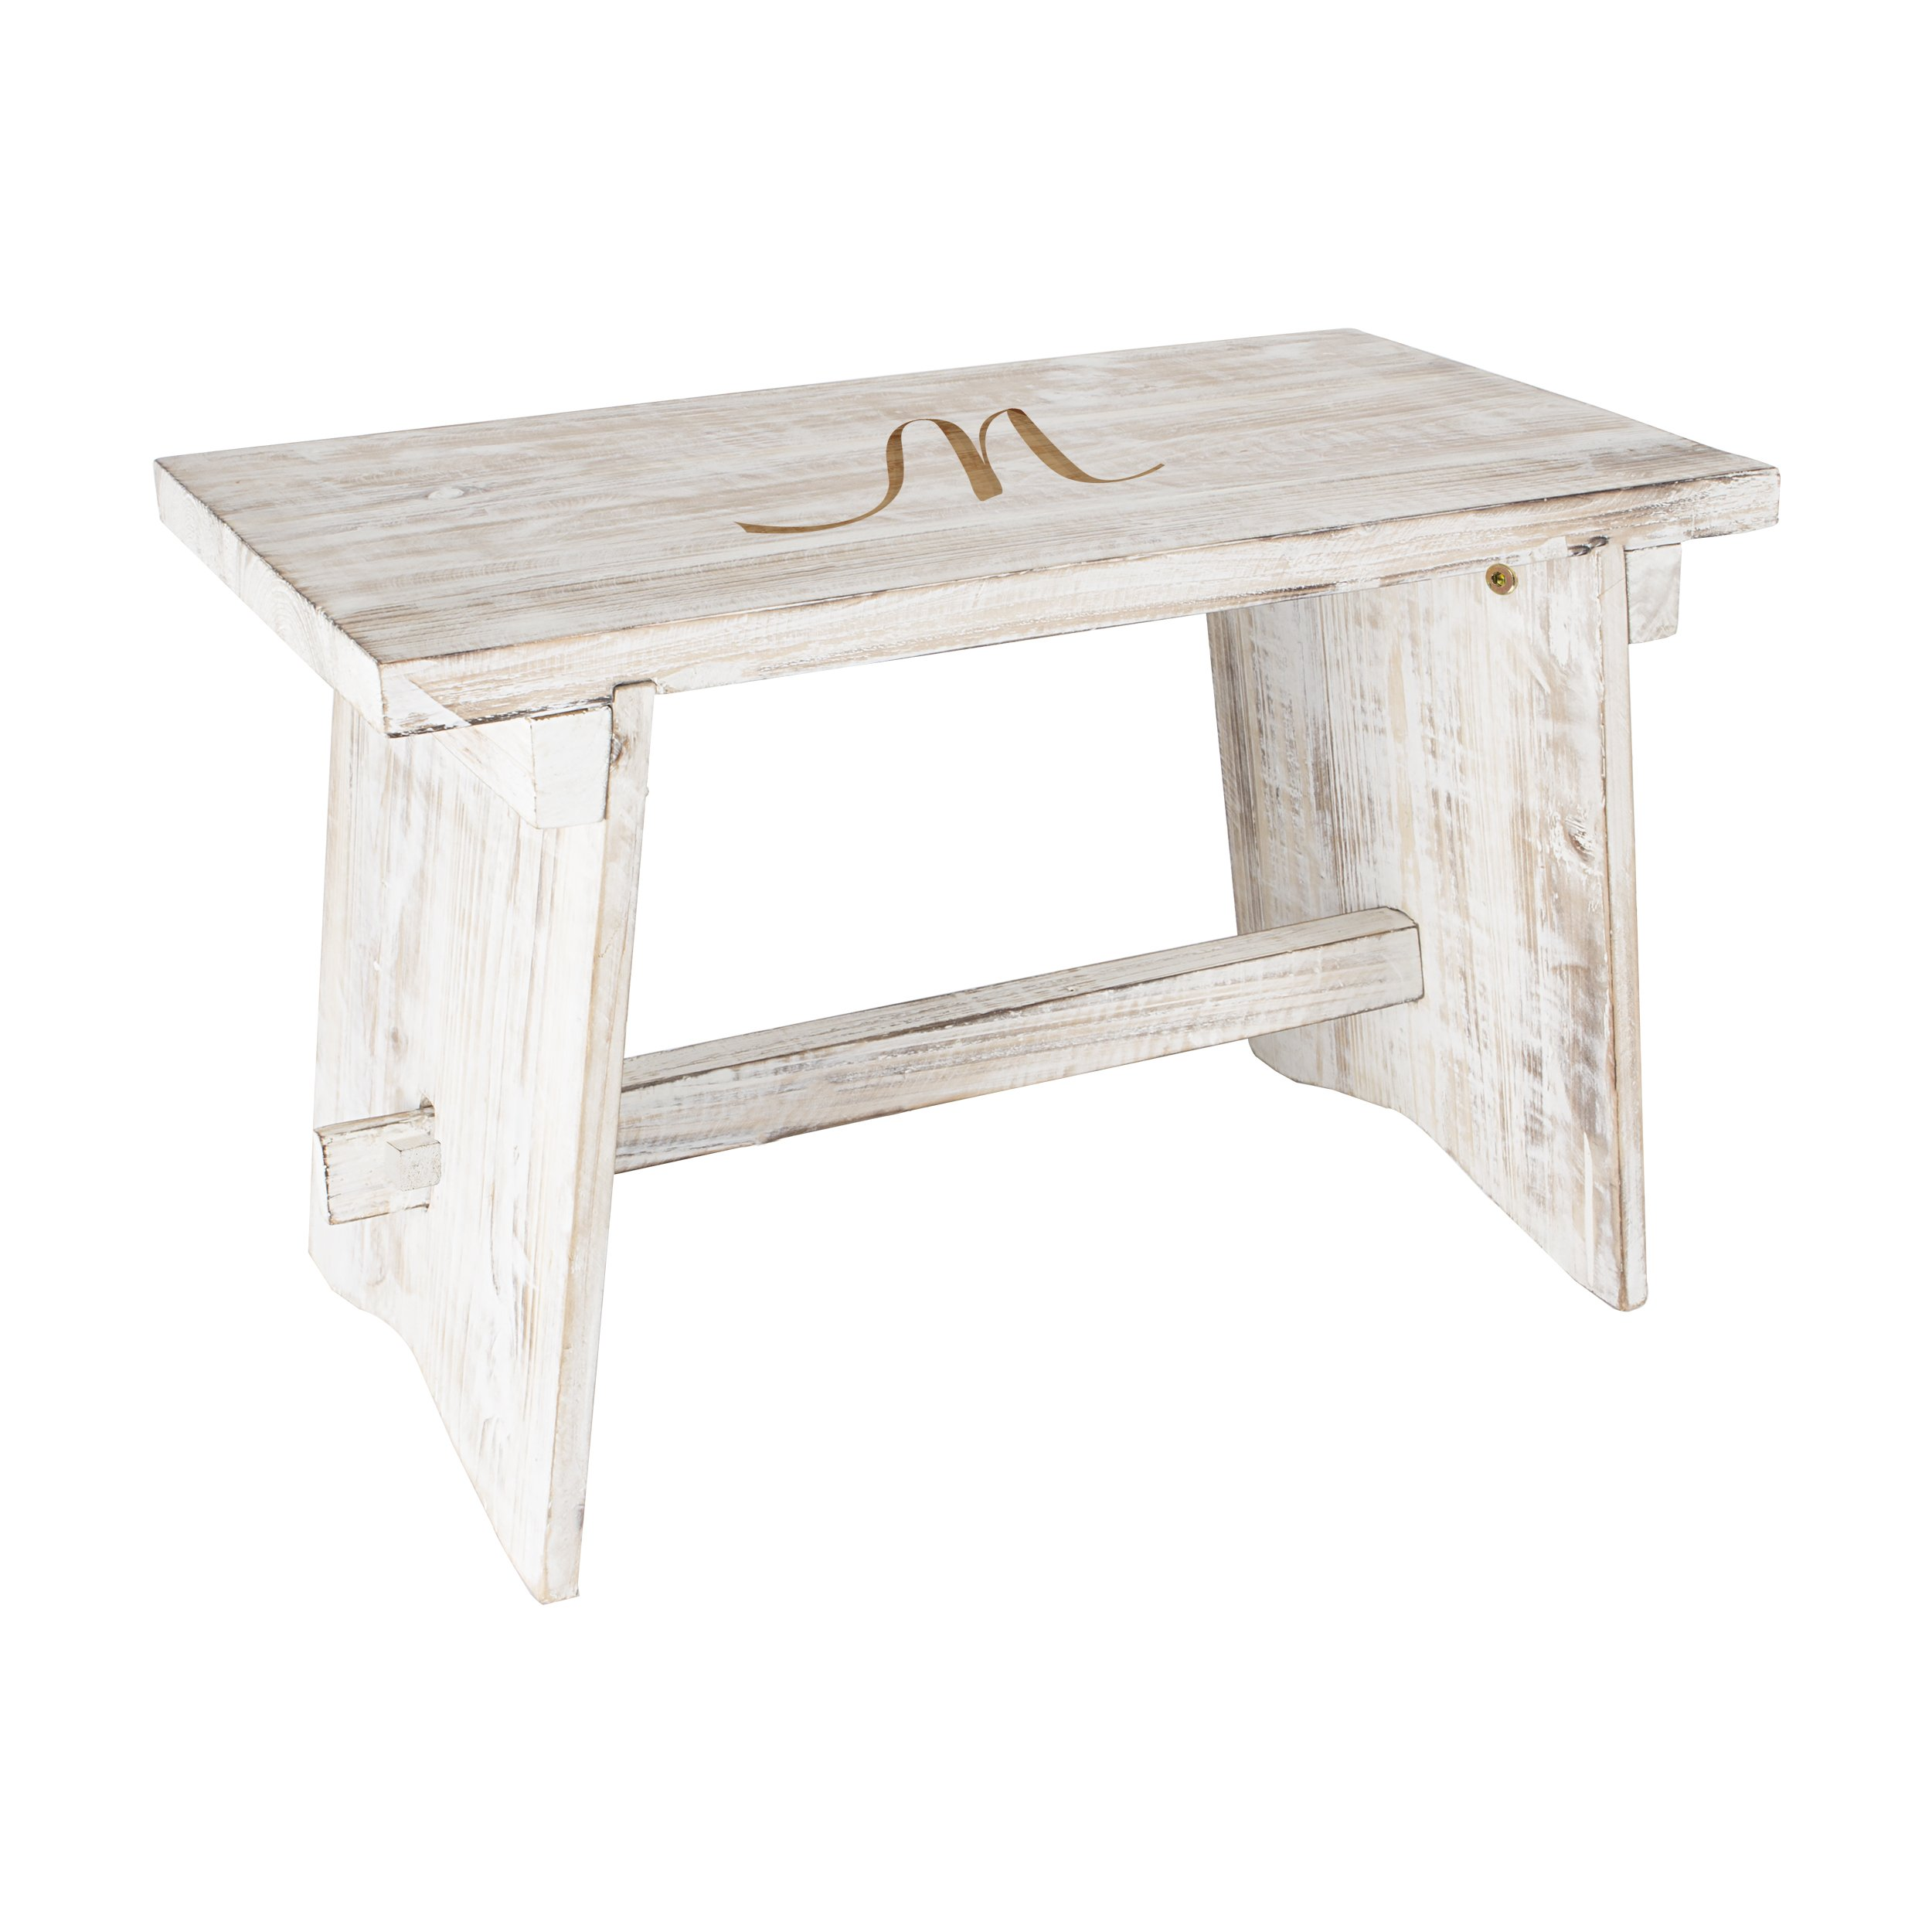 Personalized Wooden Guestbook Bench